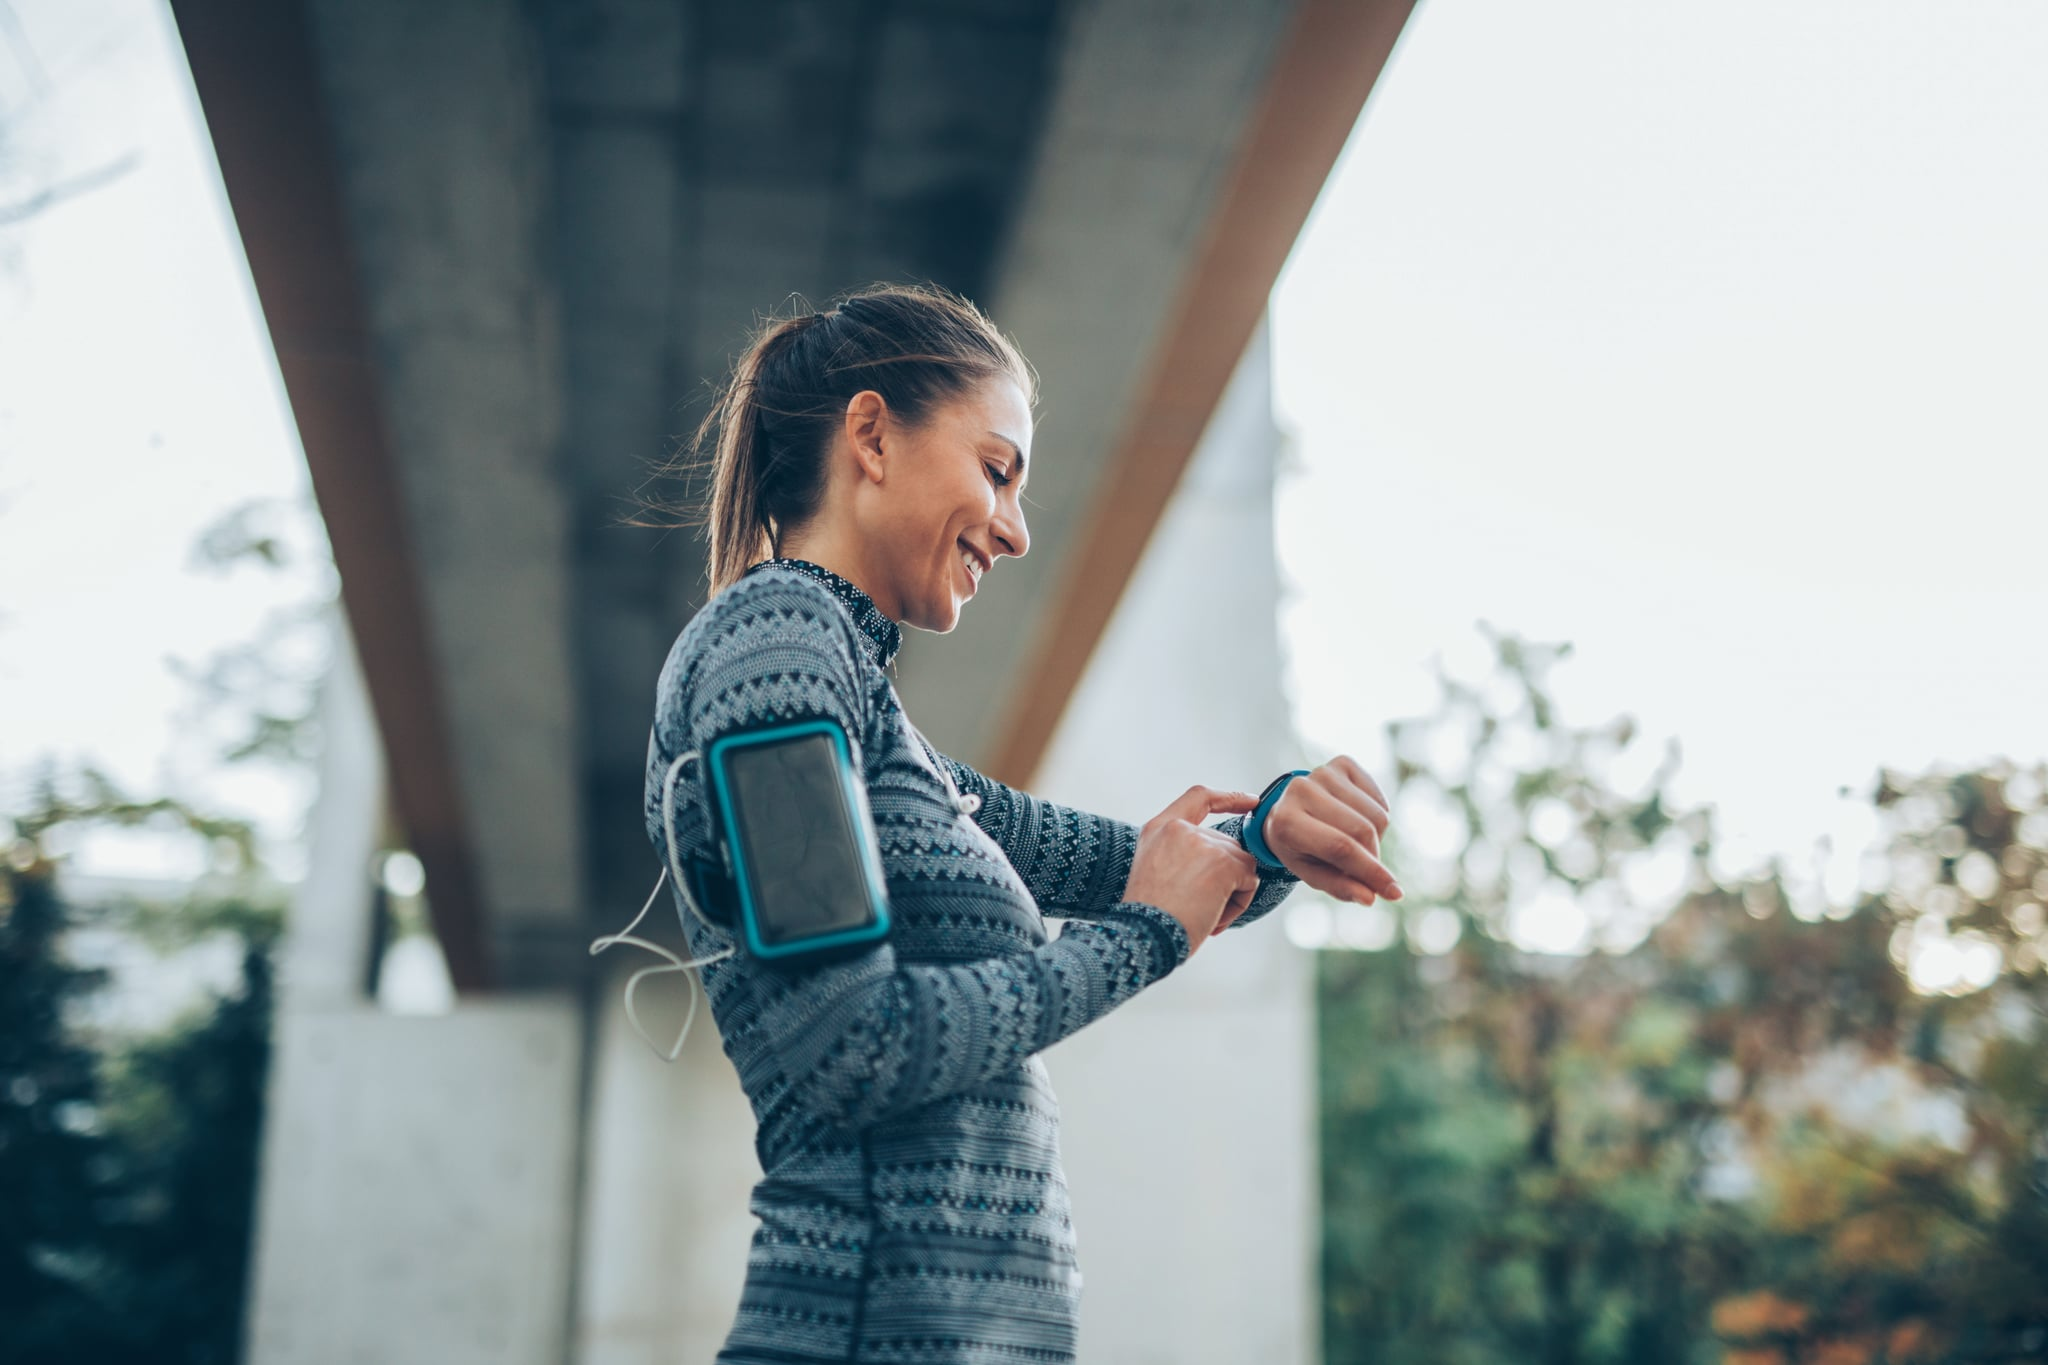 Sportswoman using a smart watch outdoors.